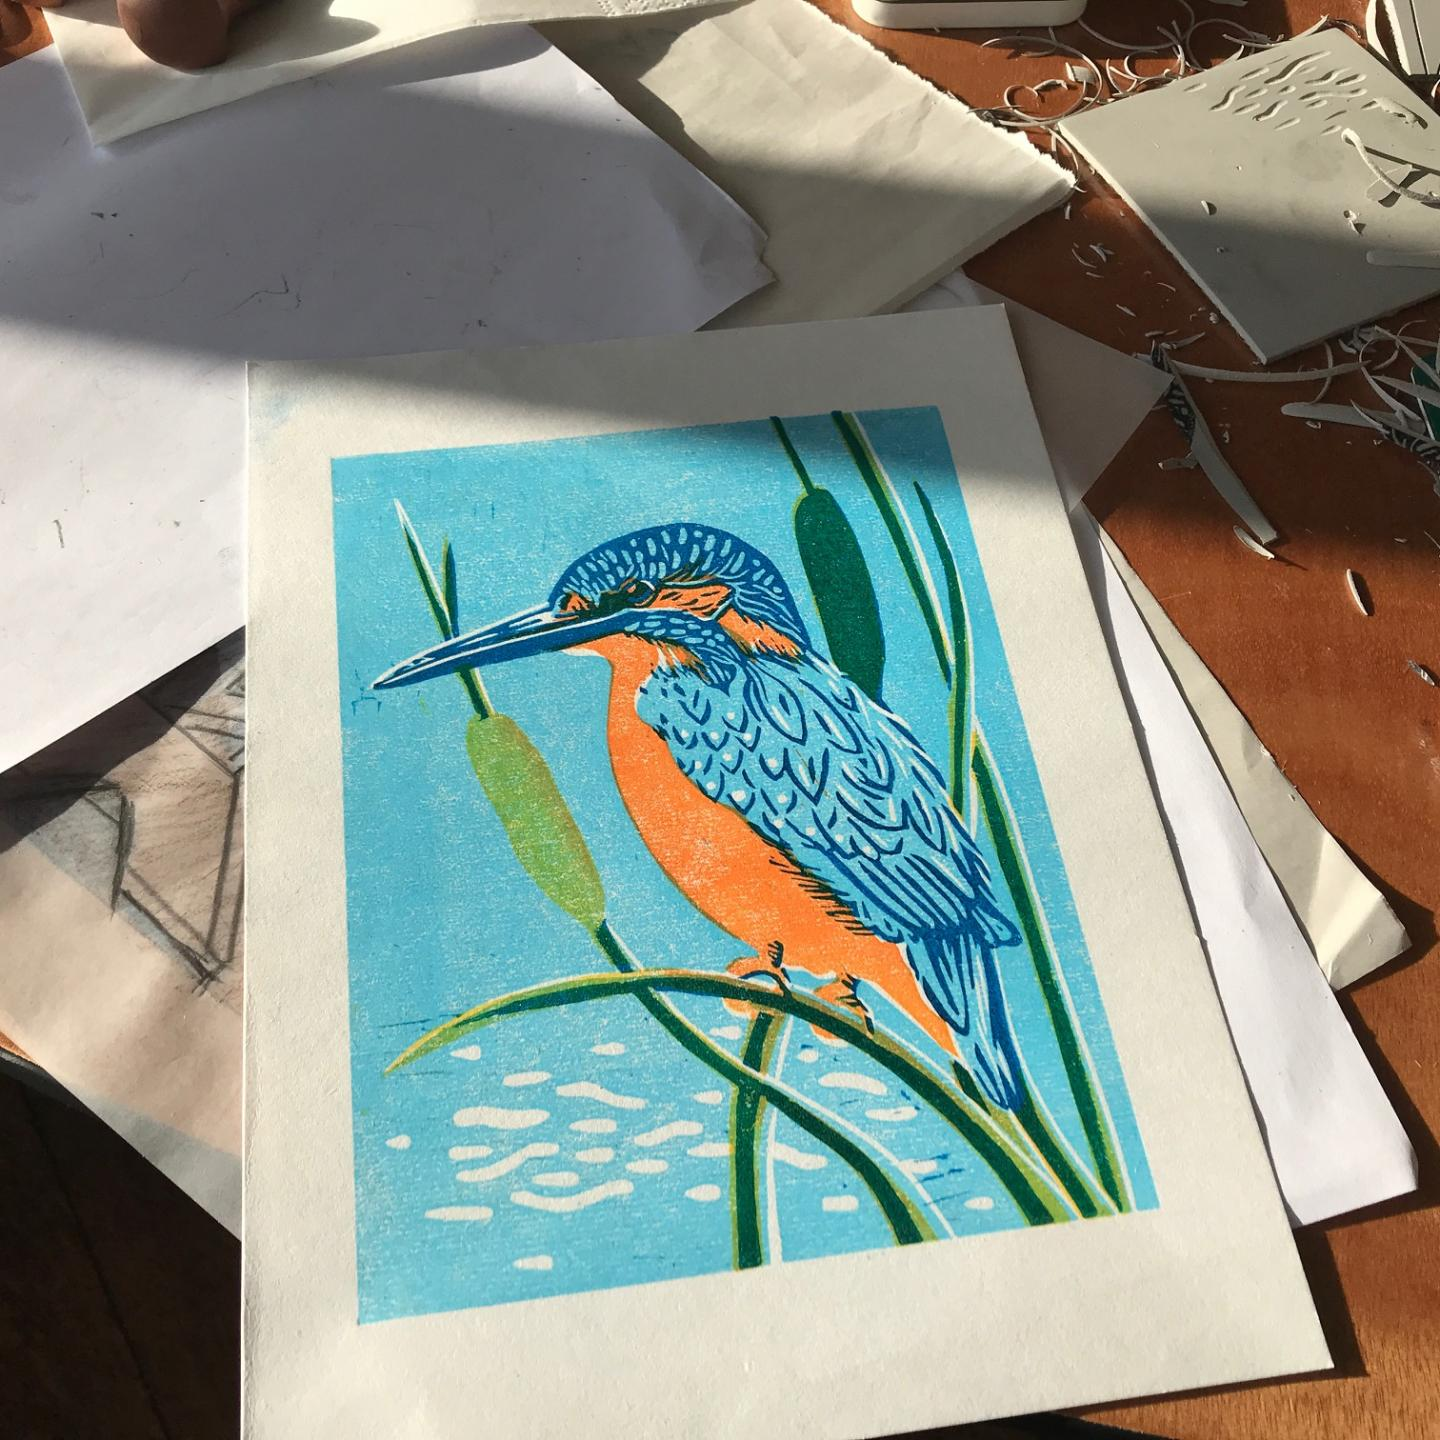 A Barle river kingfisher captured in linocut at Knapp House creative Luna North course